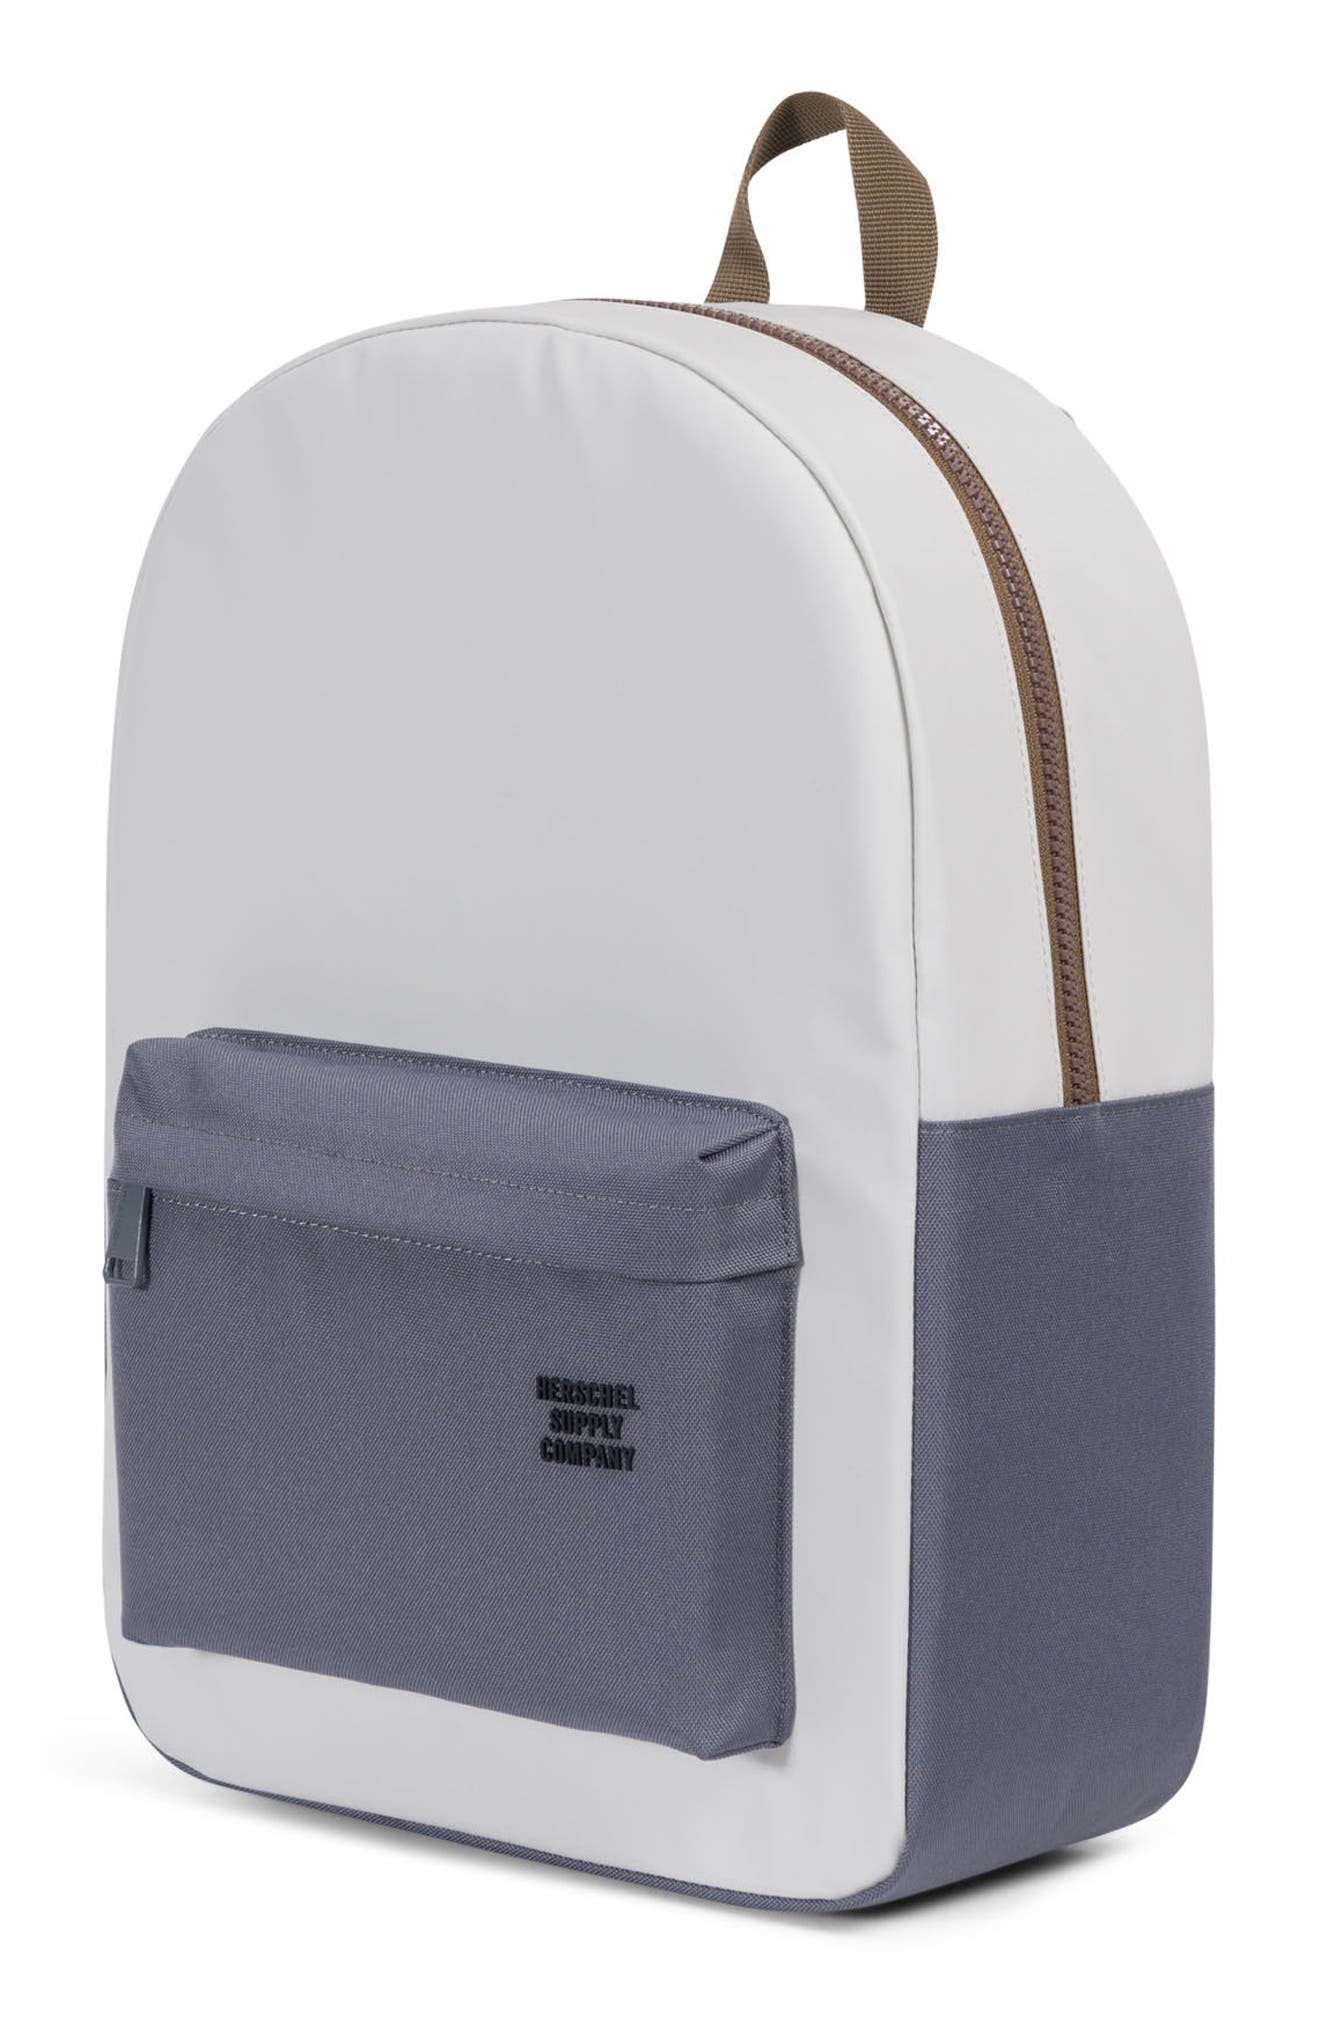 Winlaw Polycoat Studio Backpack,                             Alternate thumbnail 5, color,